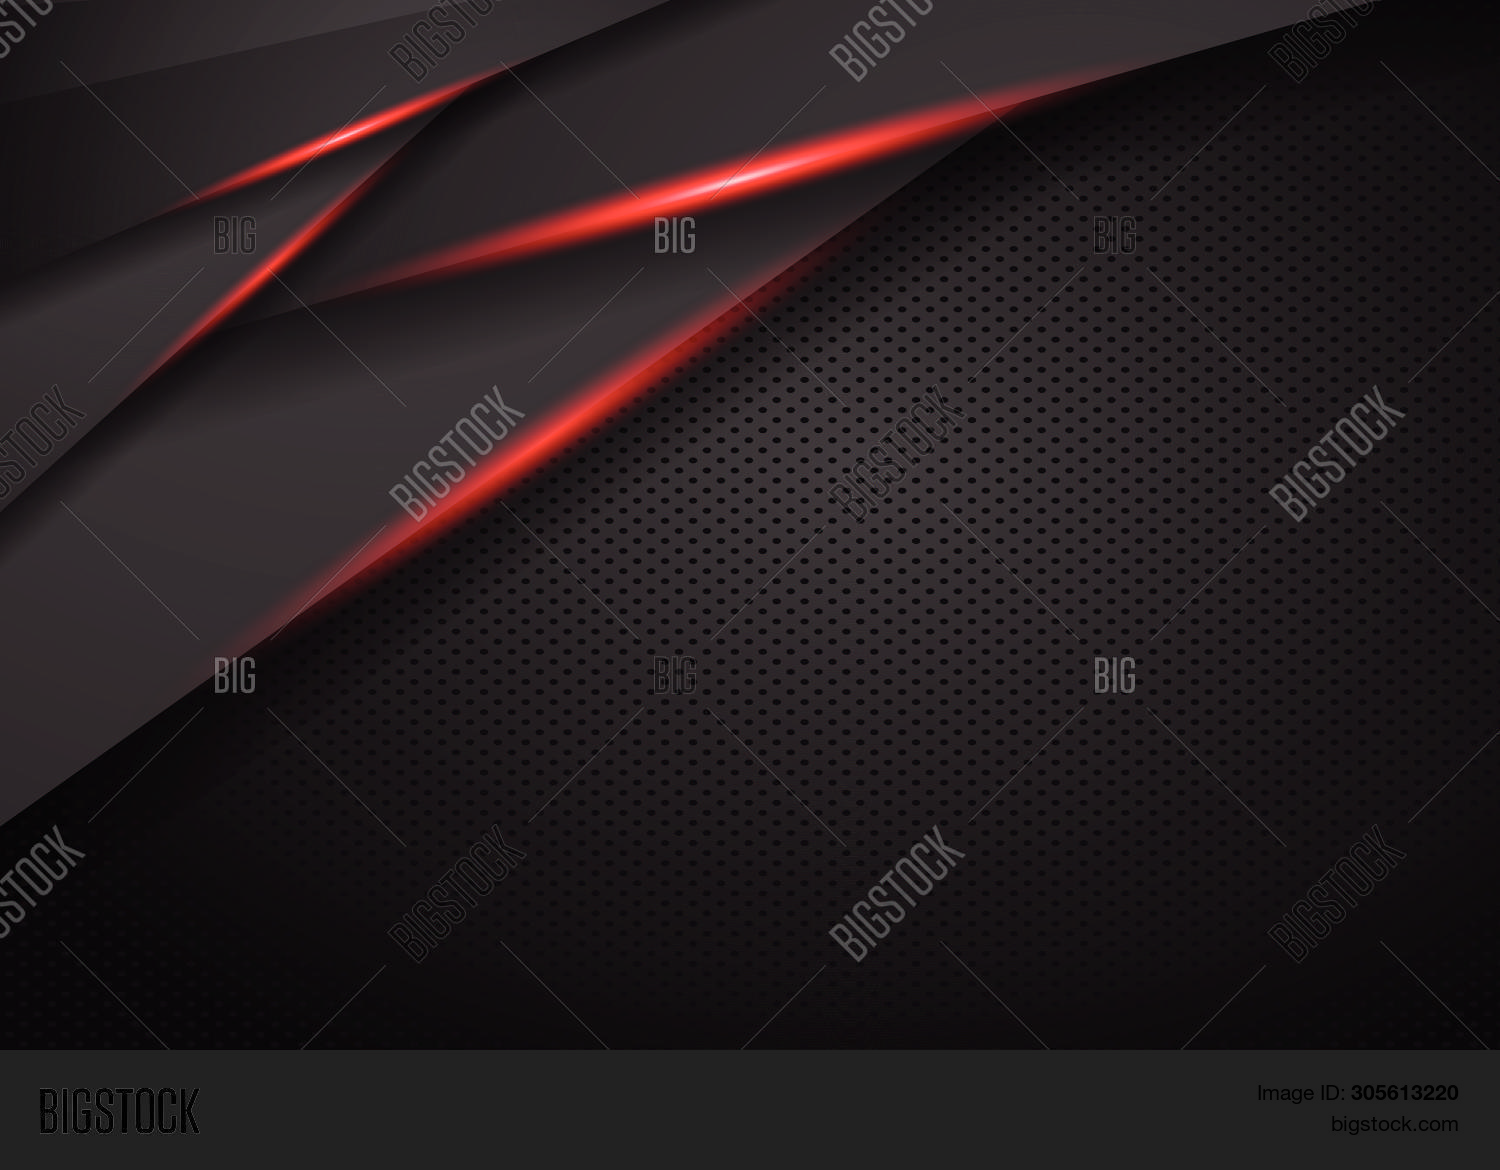 2d,abstract,advertising,aluminum,background,banner,black,brochure,business,clean,concept,copyspace,cover,cyber,darkness,design,dimension,dynamic,flare,frame,gamer,glossy,graphic,illustration,innovation,layout,leaflet,light,metallic,modern,movement,pattern,racing,rectangle,red,shadow,shape,sharp,silver,solid,space,sports,stability,steel,tech,technology,theme,triangle,vector,website